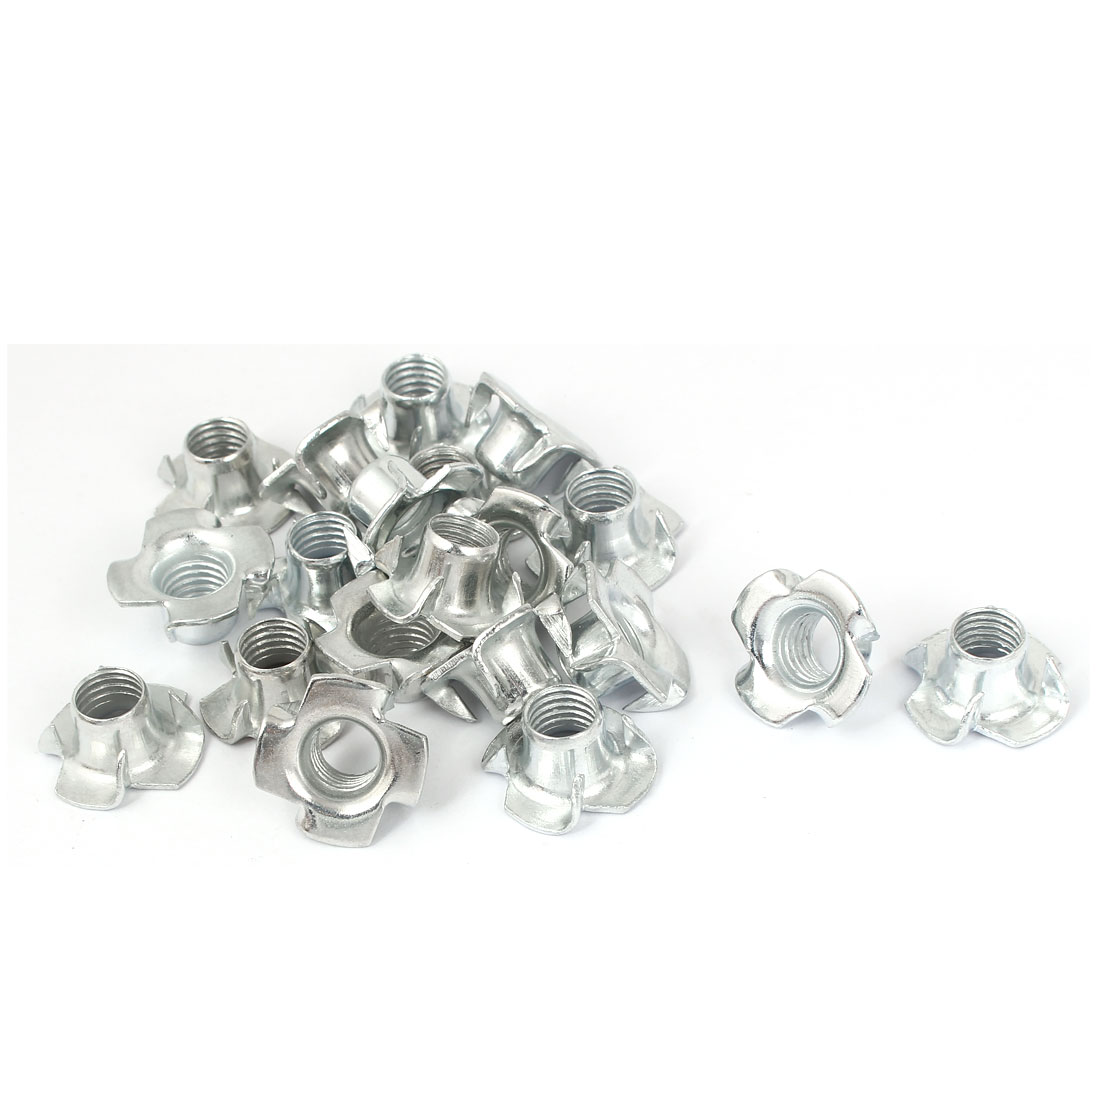 Furniture M10 Thread Zinc Plated 4 Prong Tee Nuts Insert Connectors 20pcs